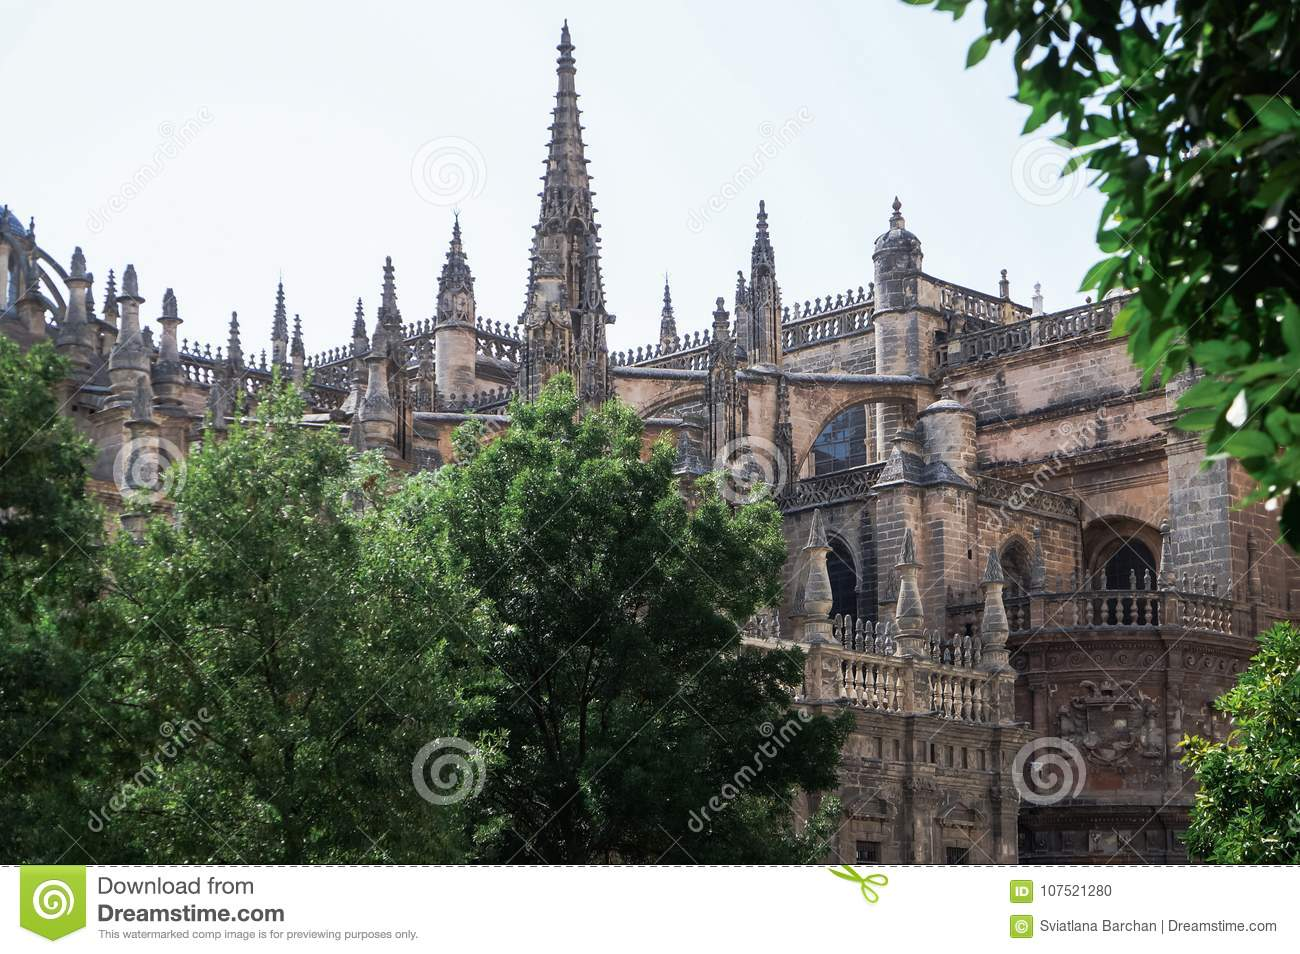 Beautiful streets and attractions of the wonderful city of Seville